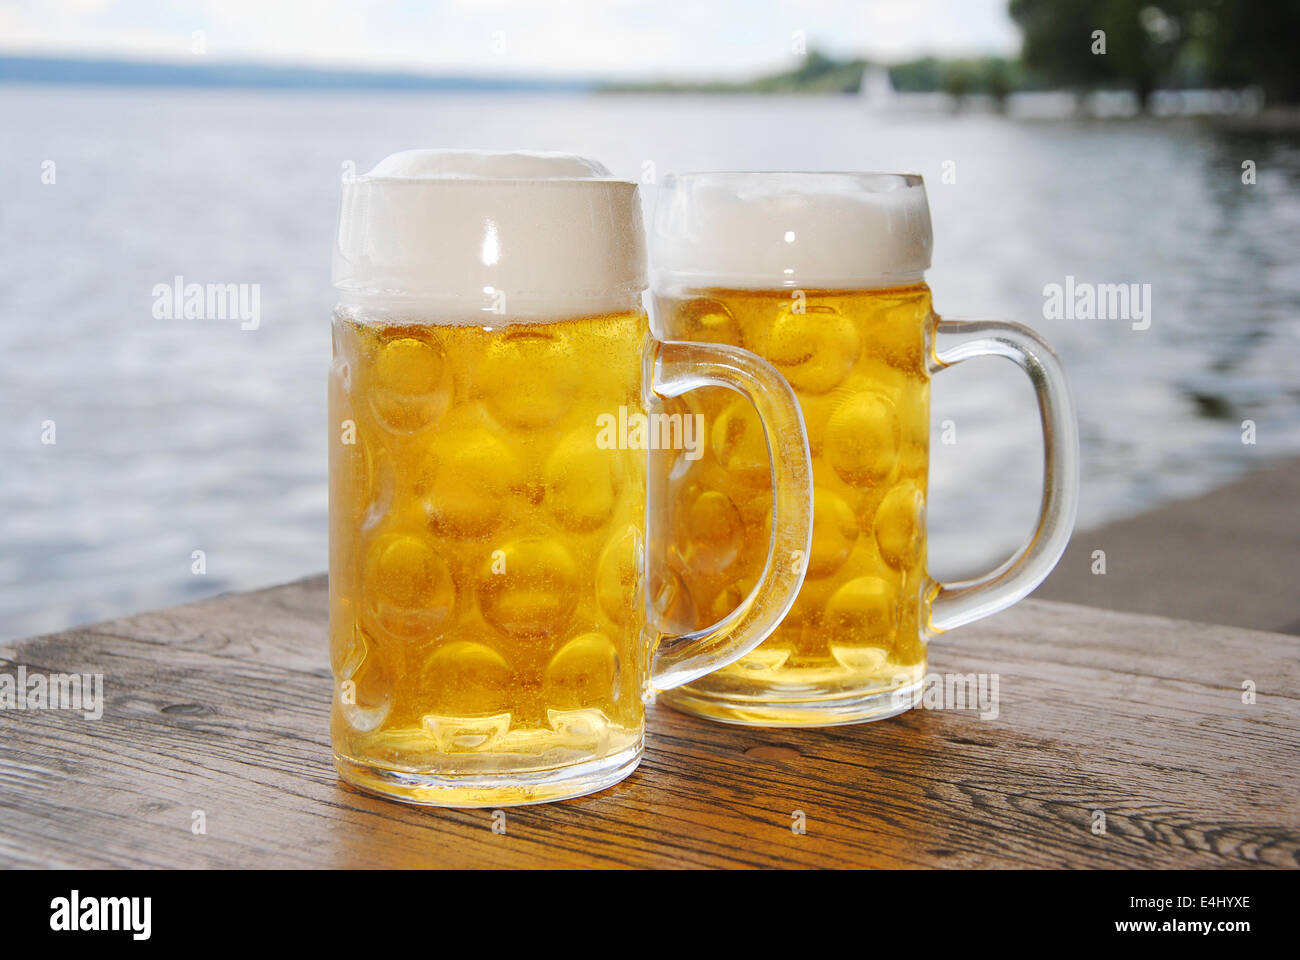 two beer mugs with fresh beer and foam on a wooden table in a beer garden on lake, close up - Stock Image